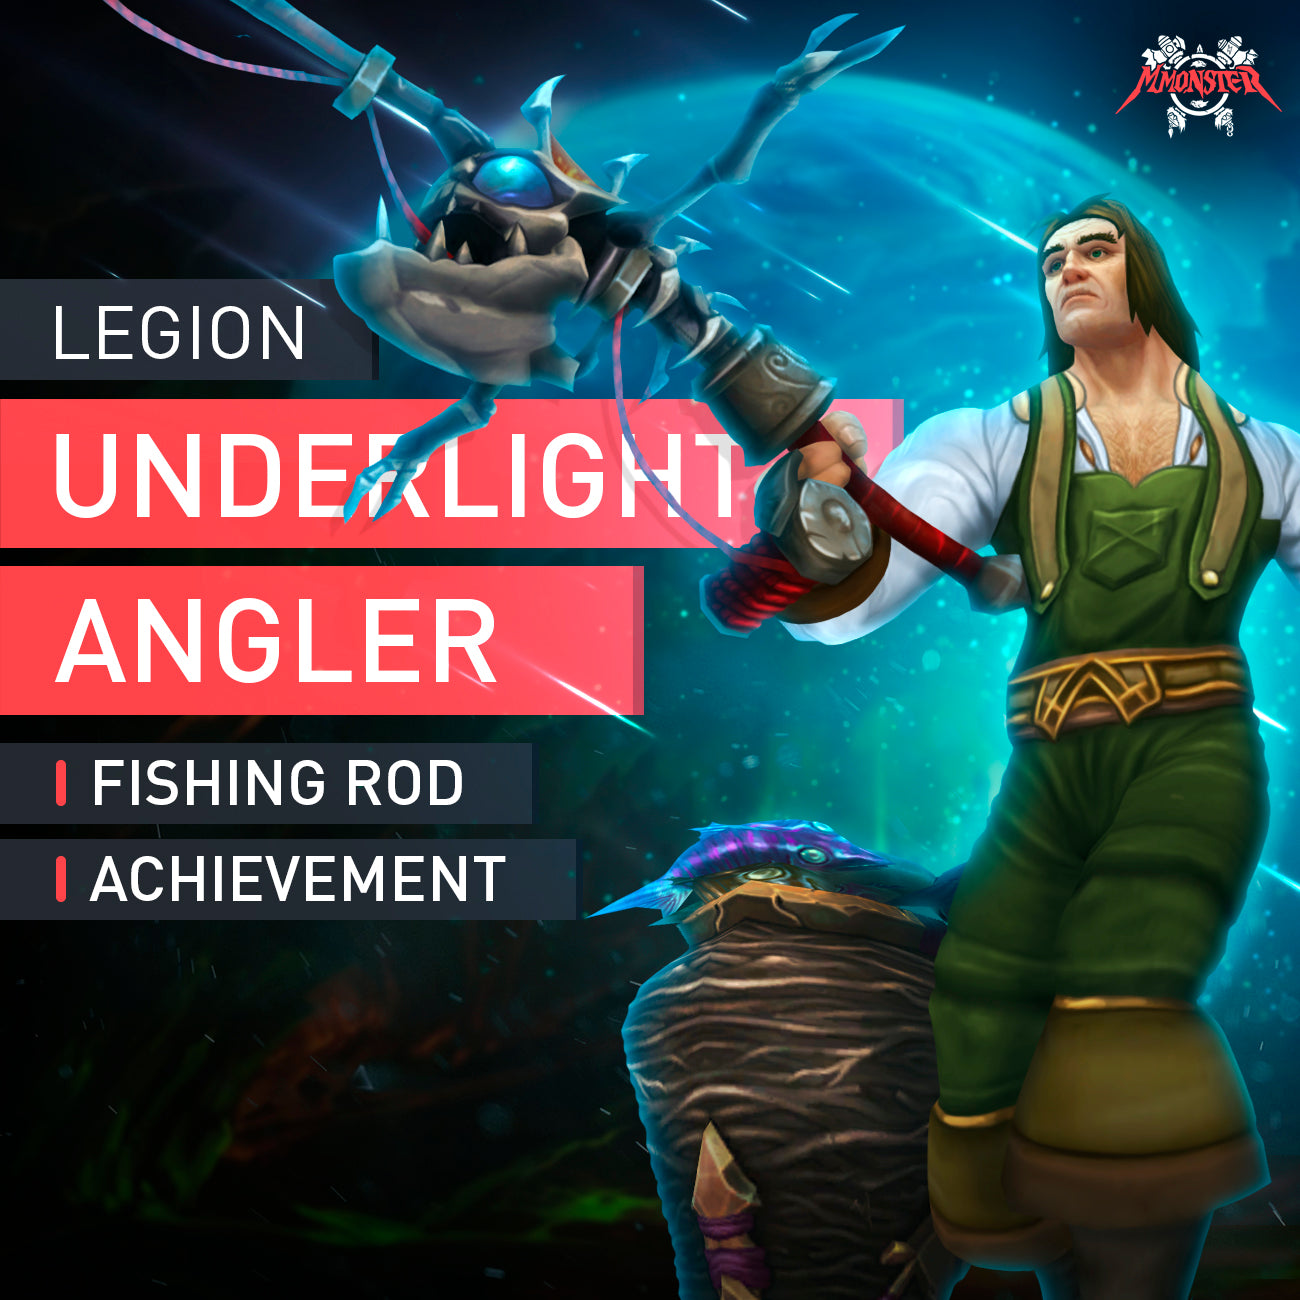 Underlight Angler - MMonster